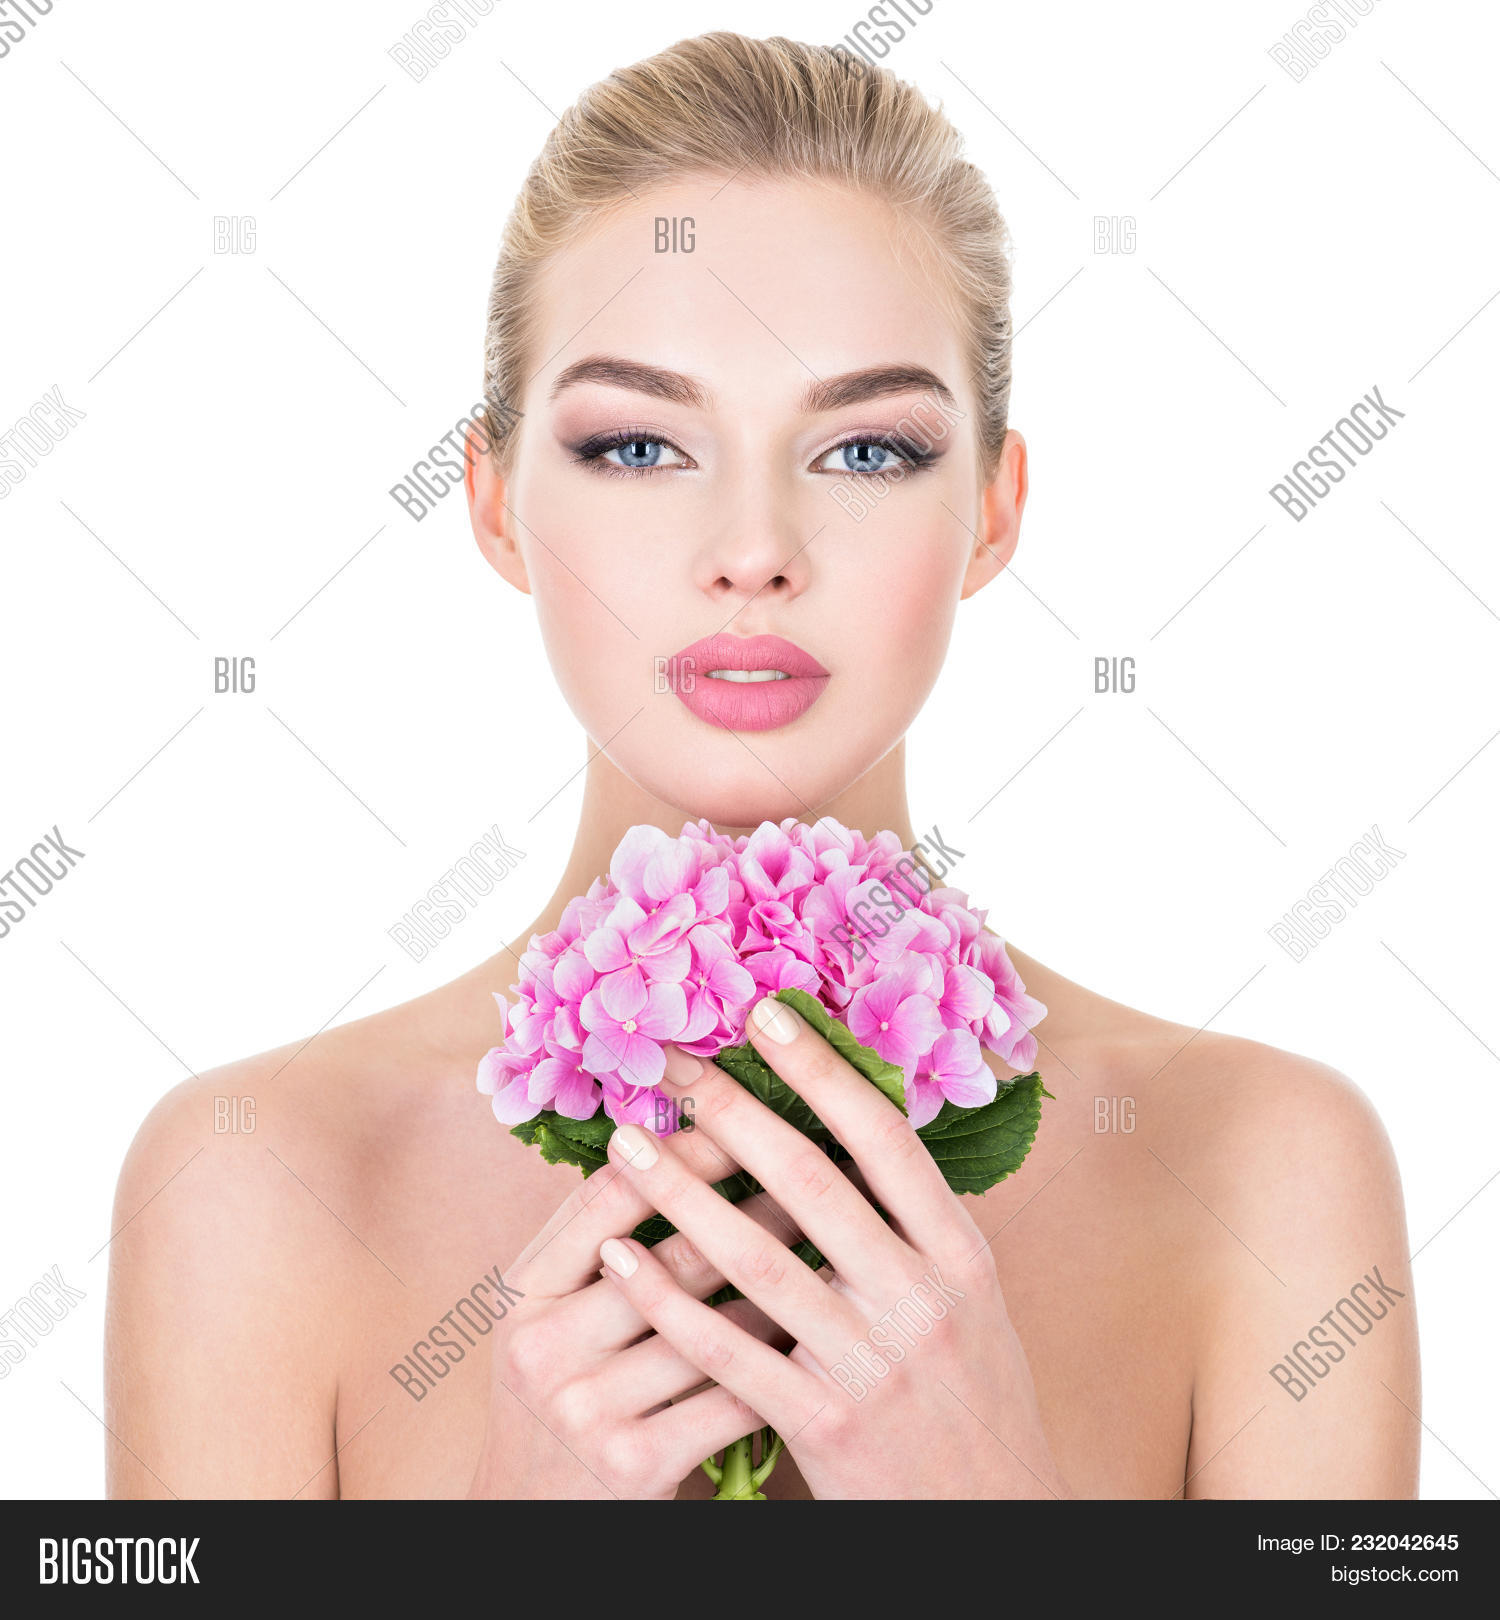 Young beautiful woman image photo free trial bigstock young beautiful woman with flowers near face beauty treatment concept skin care pretty izmirmasajfo